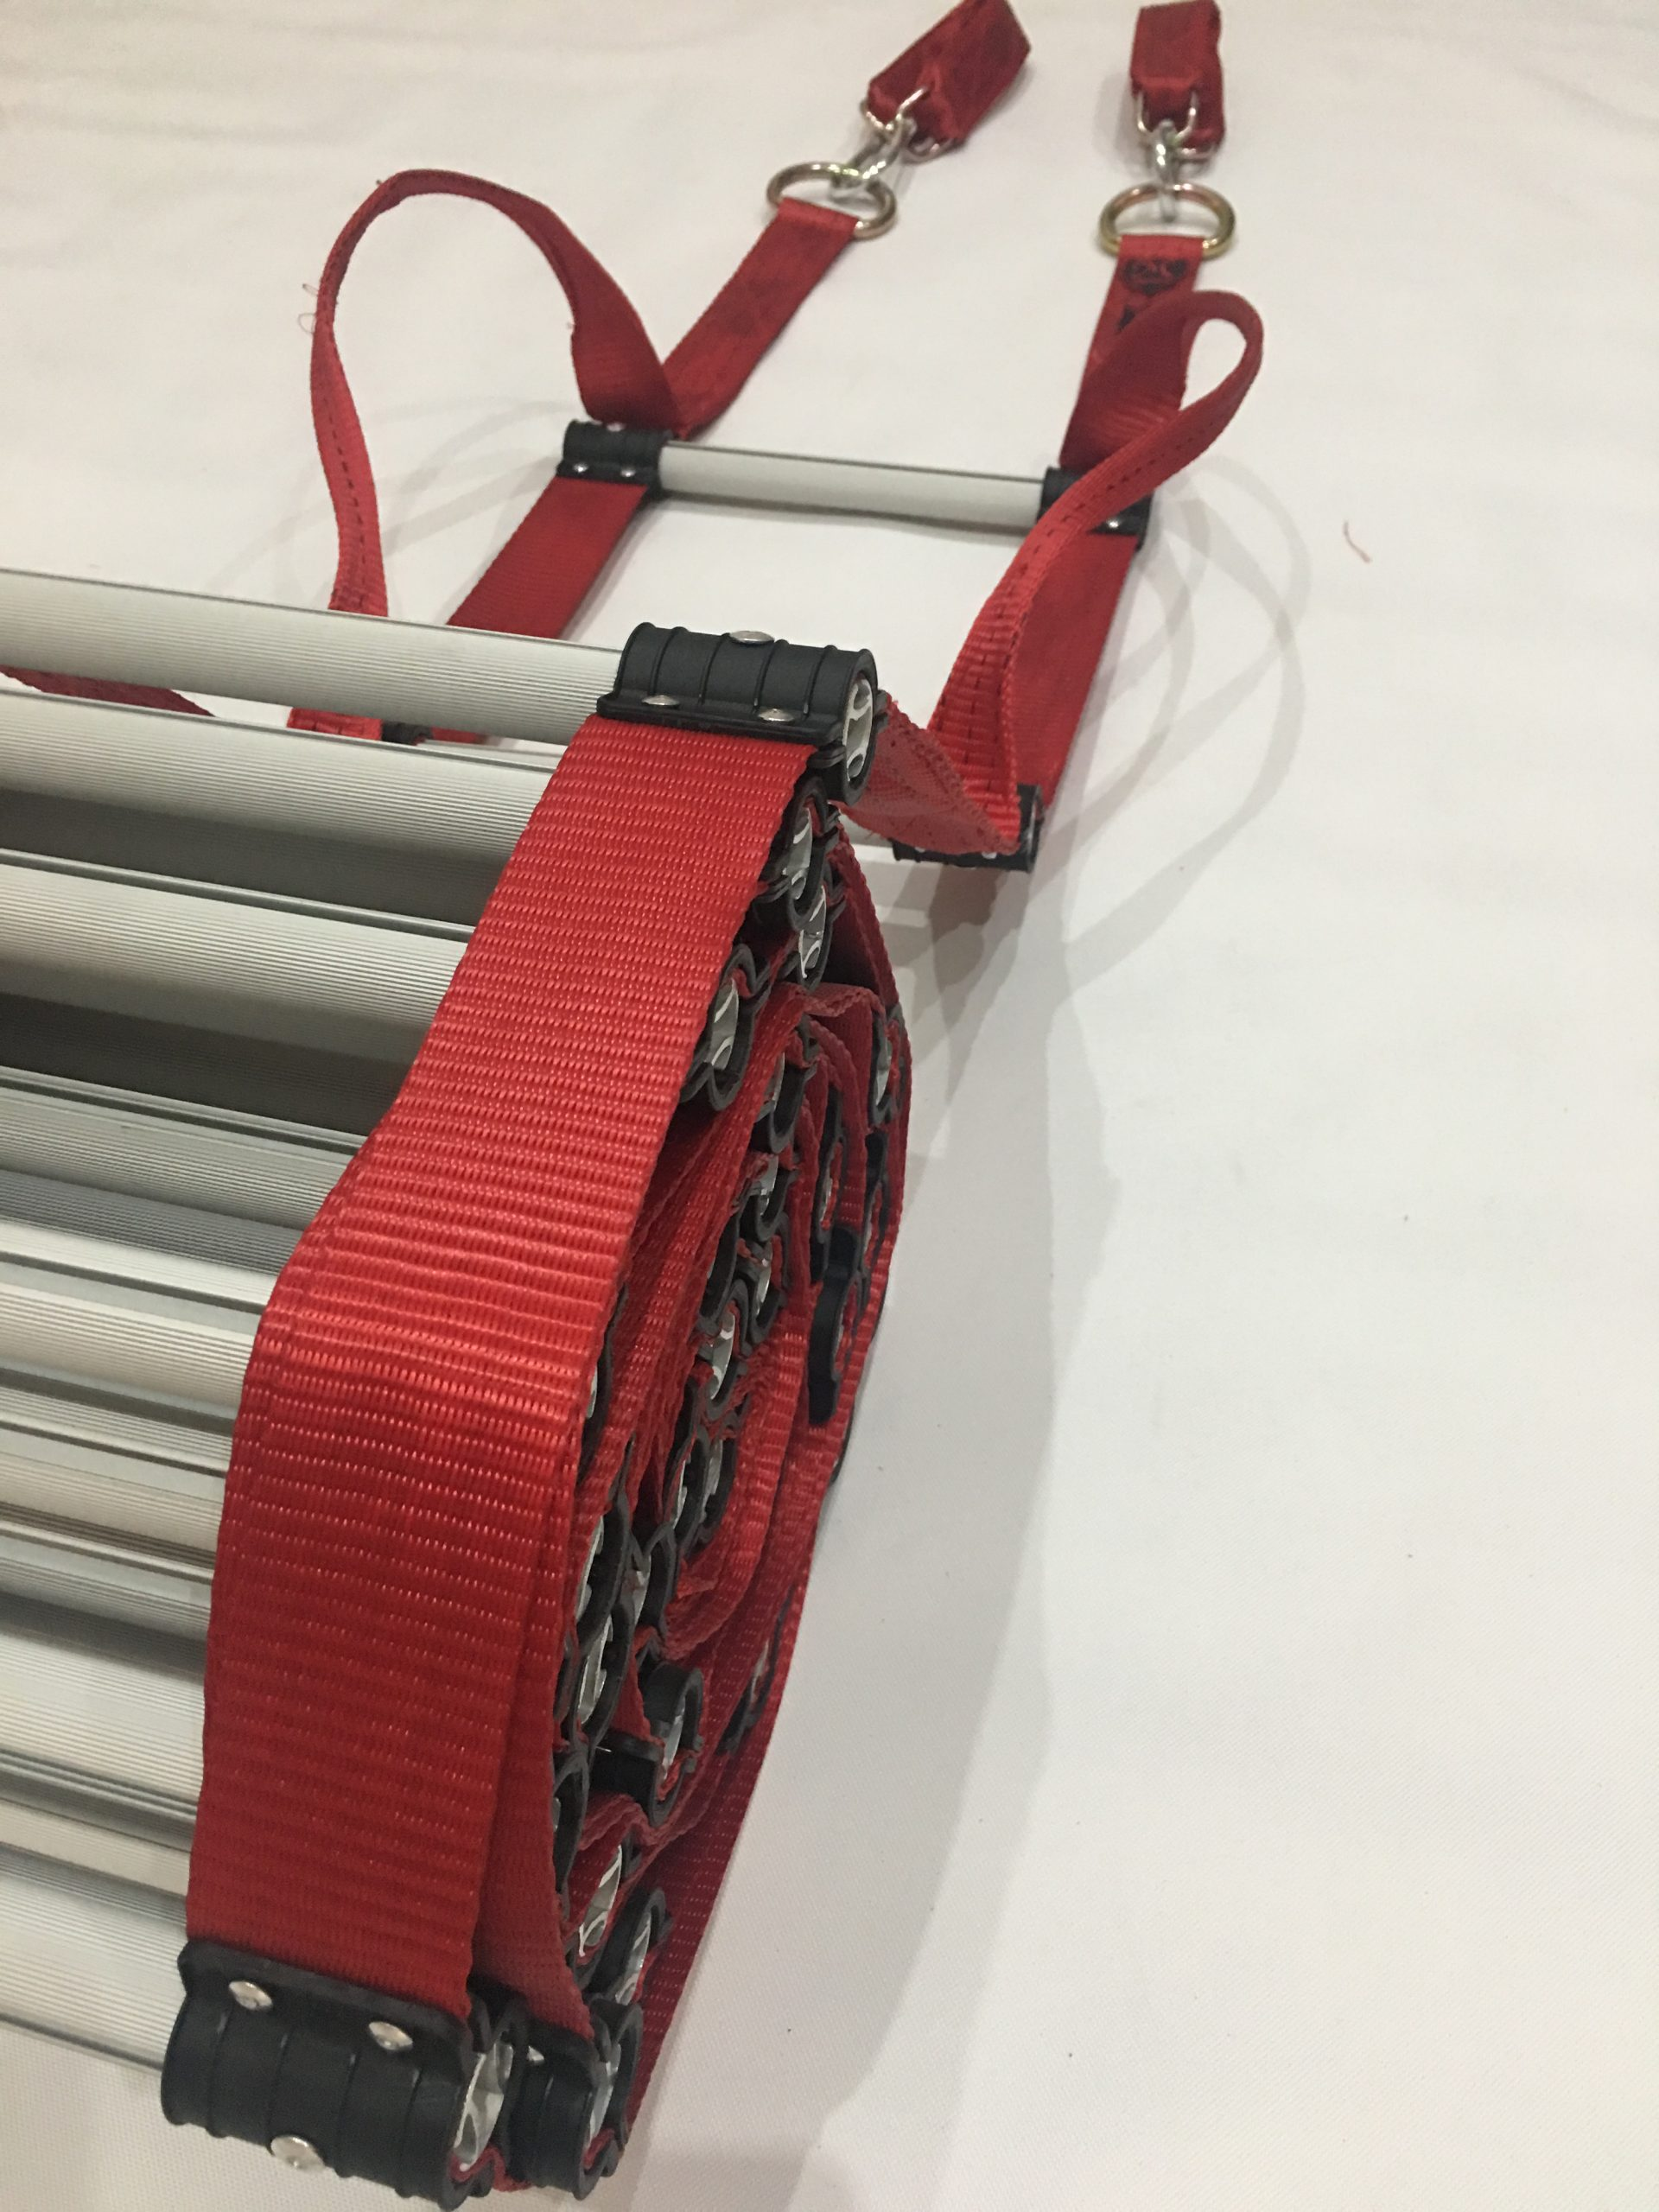 Fire Retardant Rope Ladder with Webbing Handles